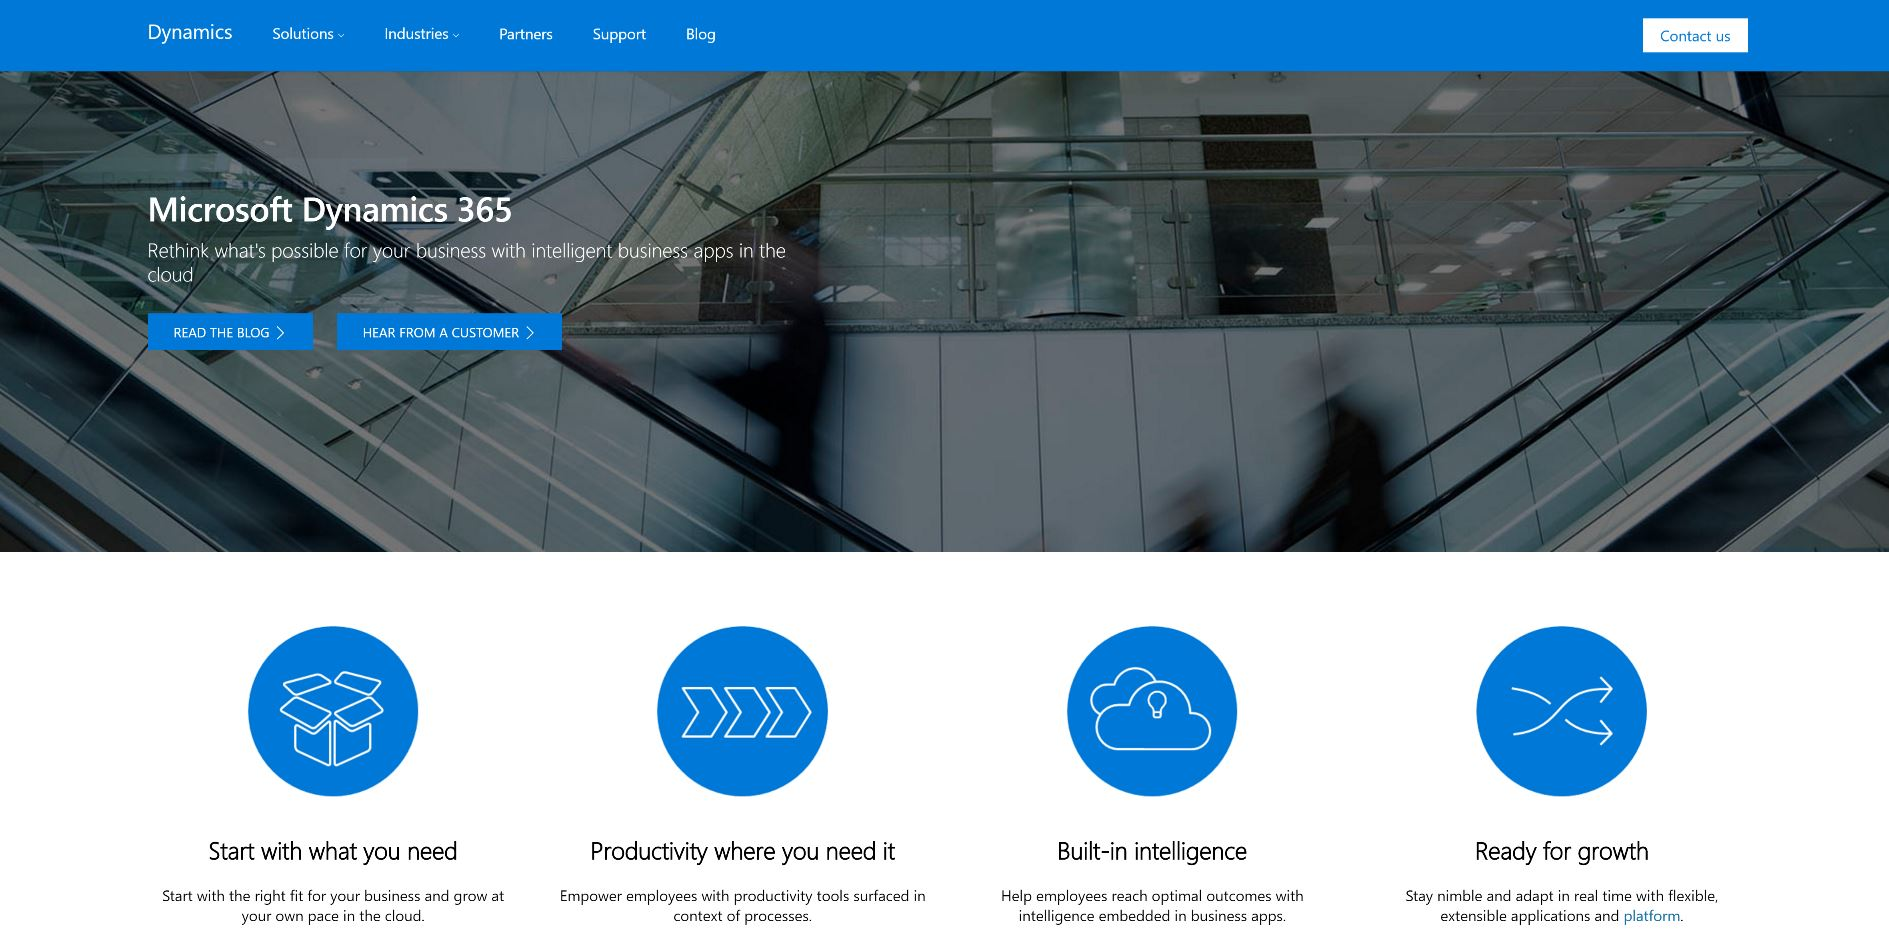 Microsoft challenges partner Salesforce with its Dynamics 365, combining CRM, ERP and Office